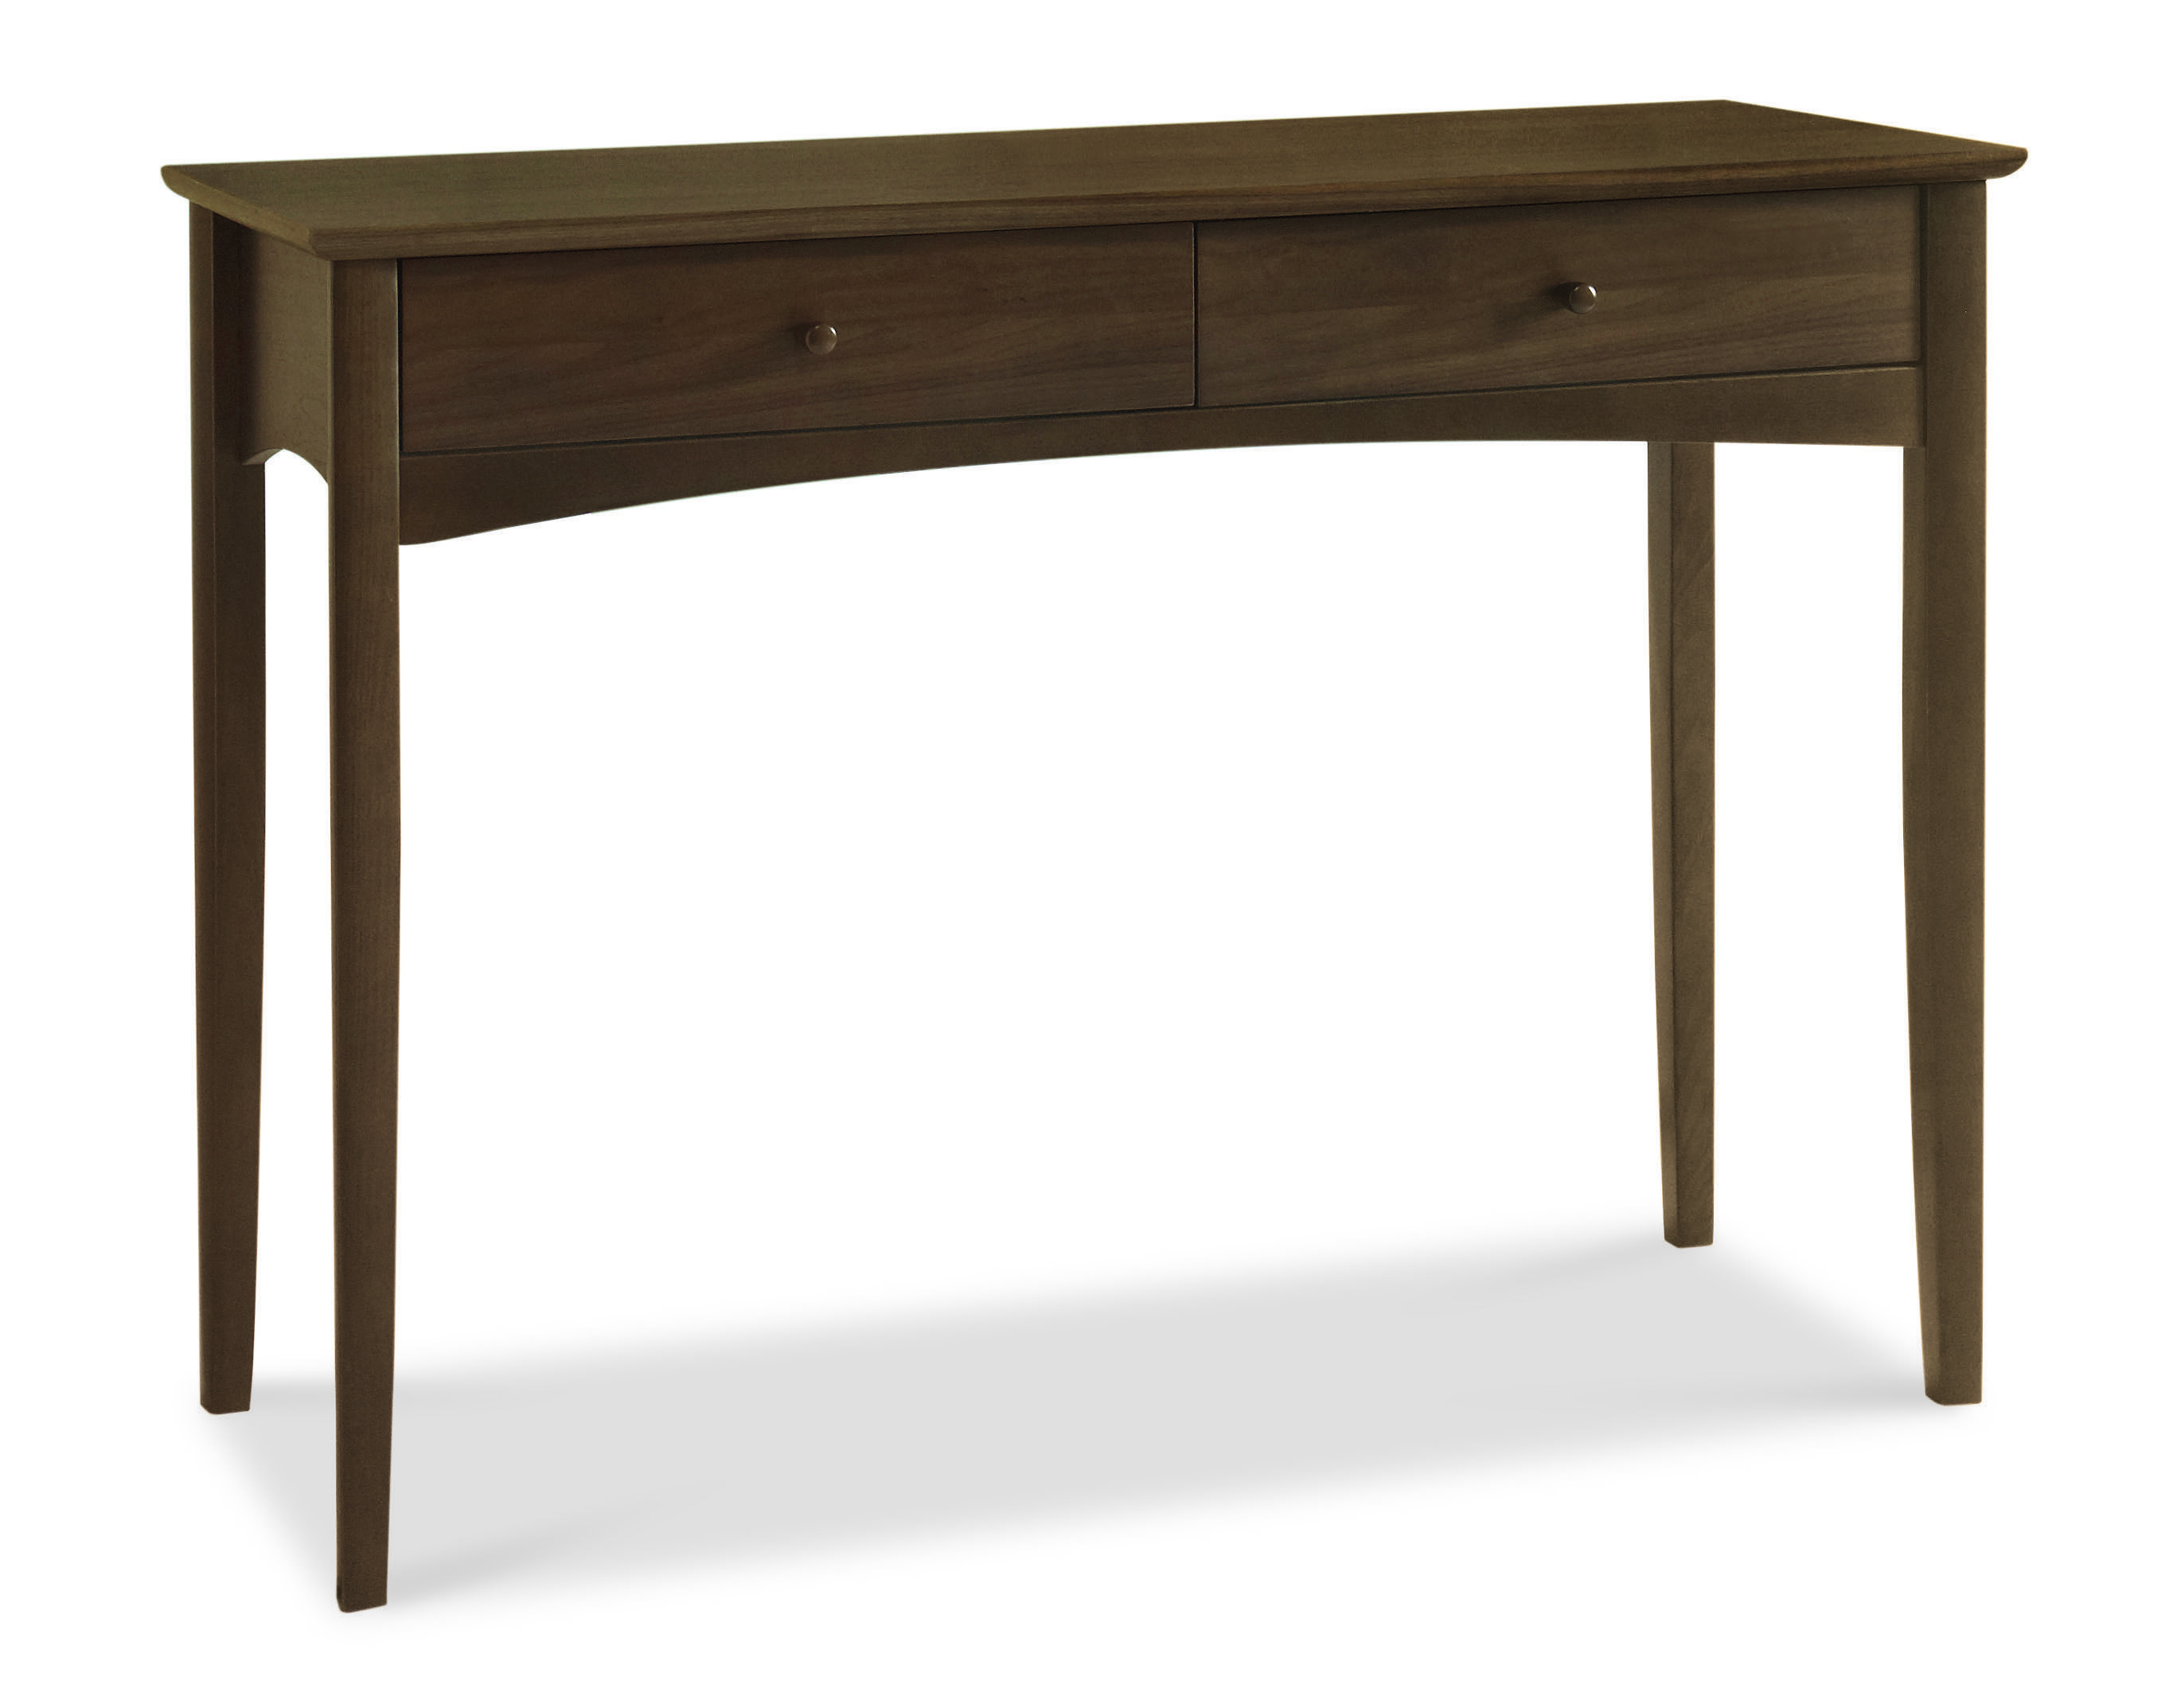 Warwick dressing table furniture instant home for Home furniture dressing table